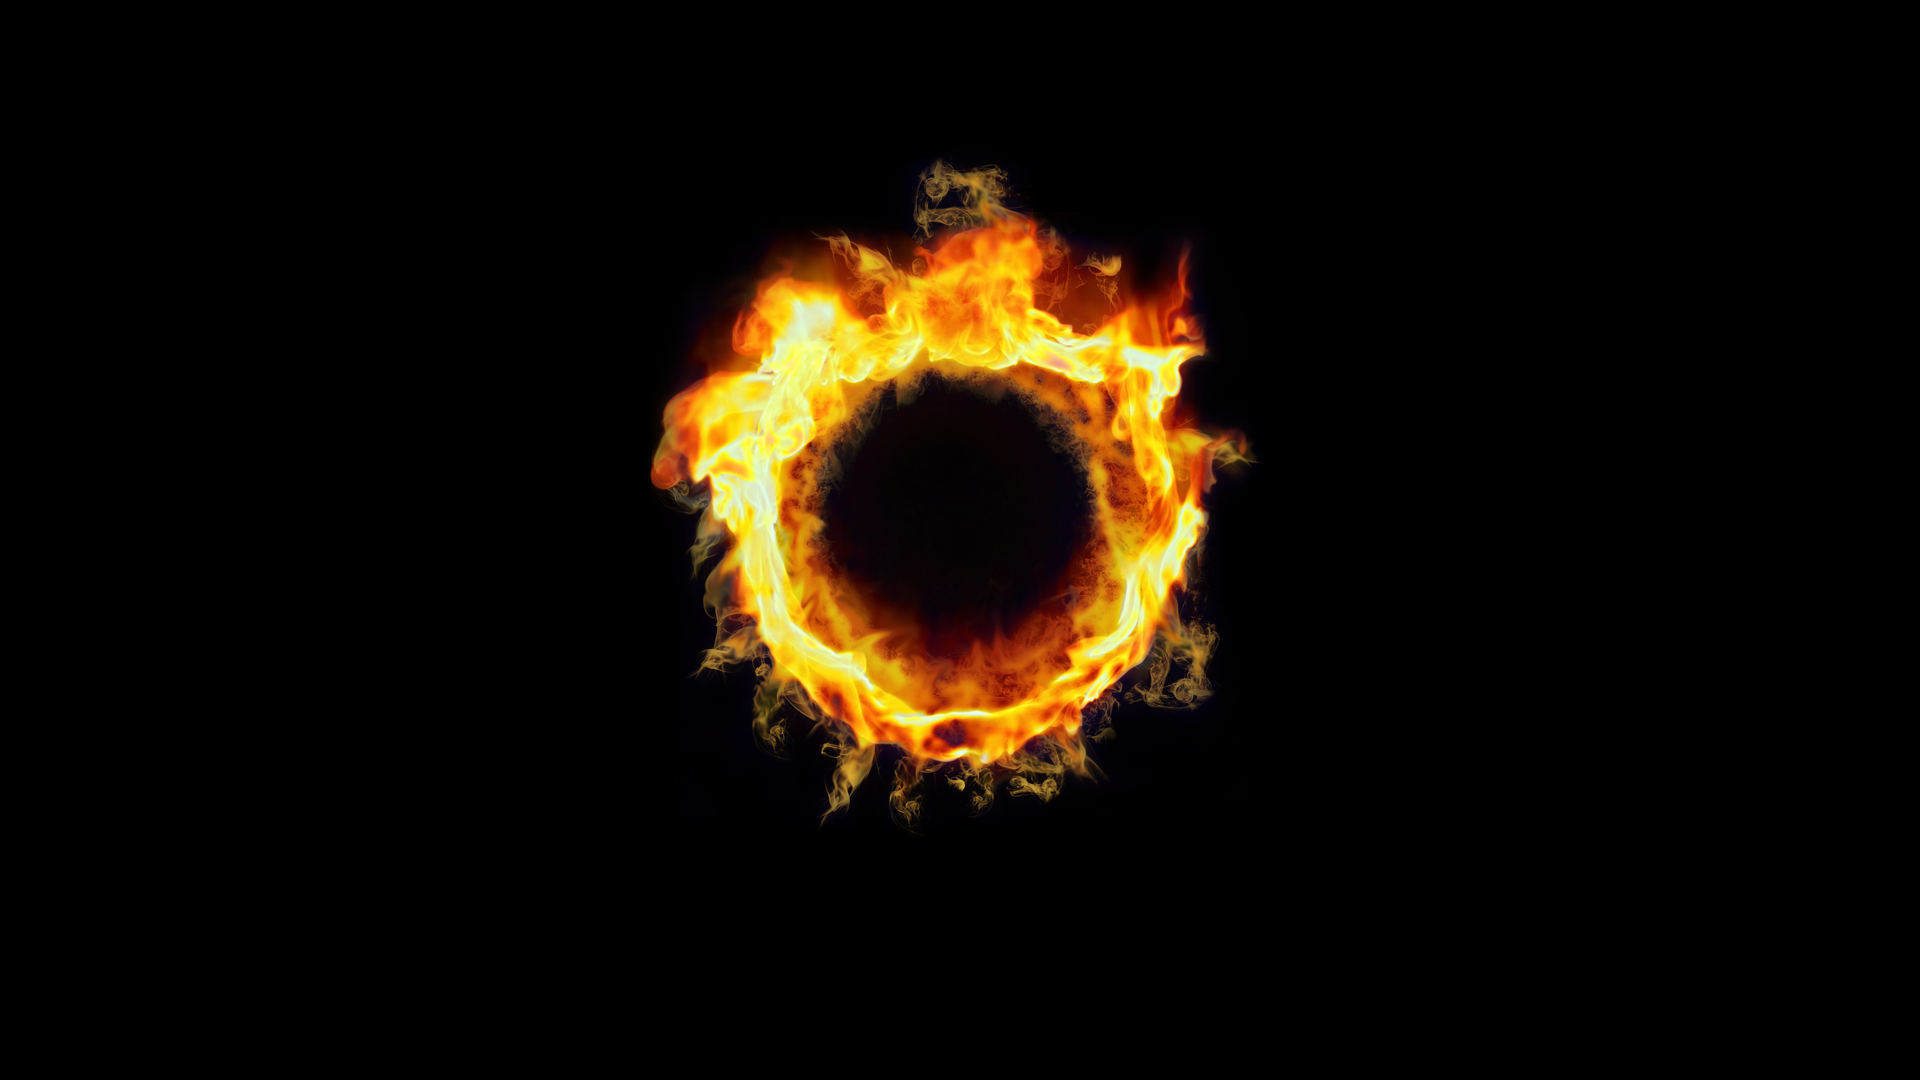 What Is A Ring Of Fire Refer To